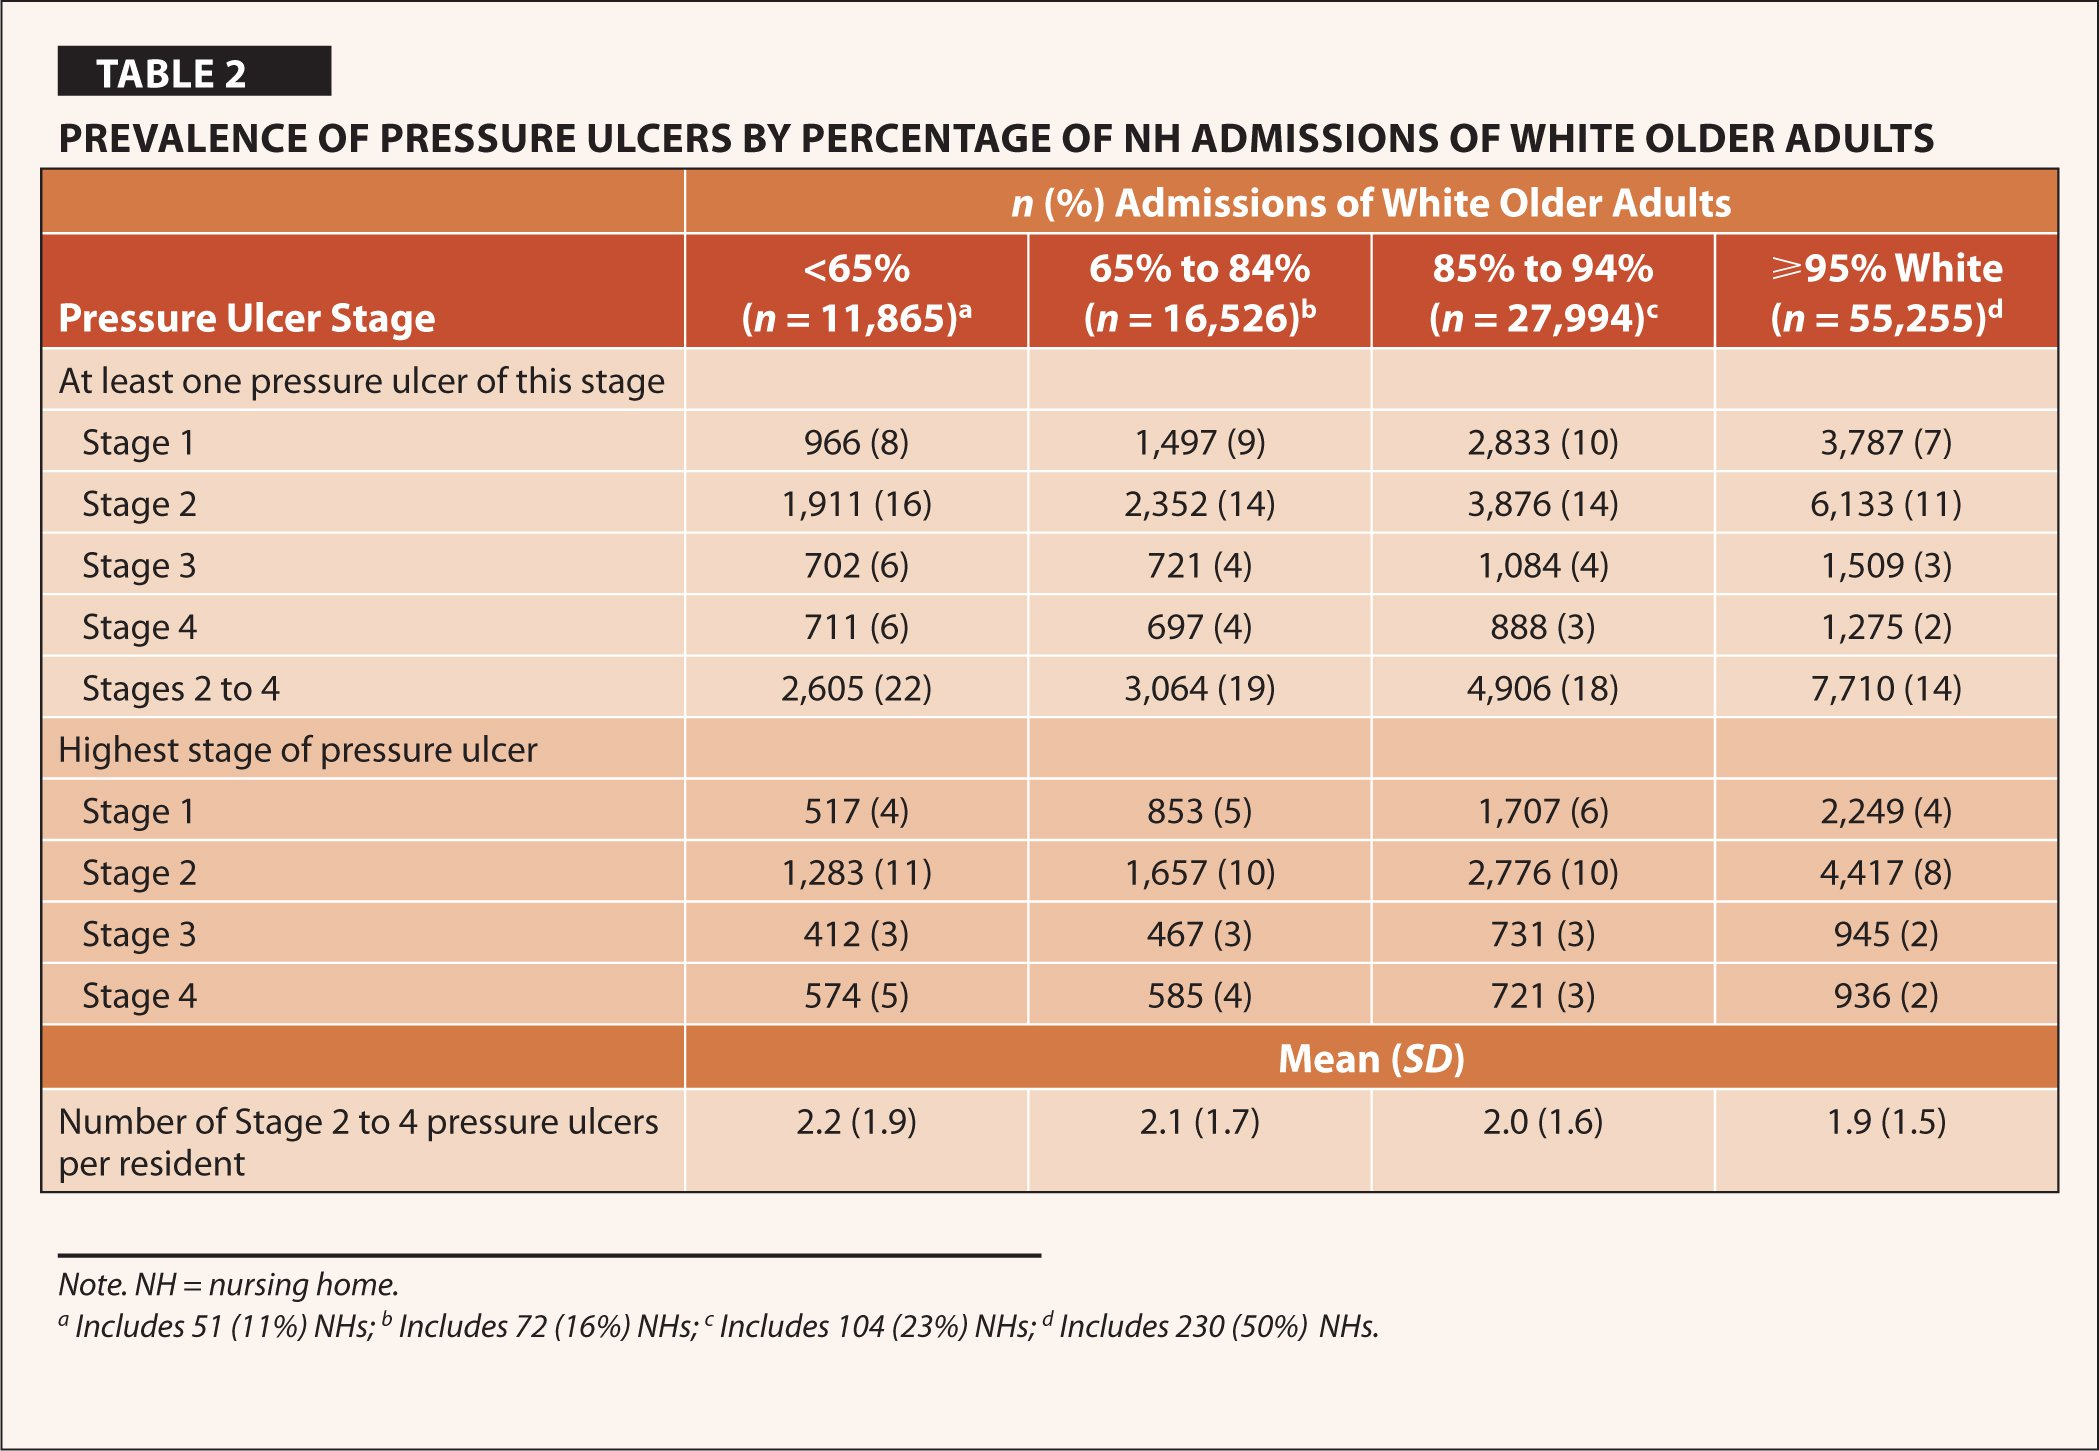 Prevalence of Pressure Ulcers by Percentage of NH Admissions of White Older Adults